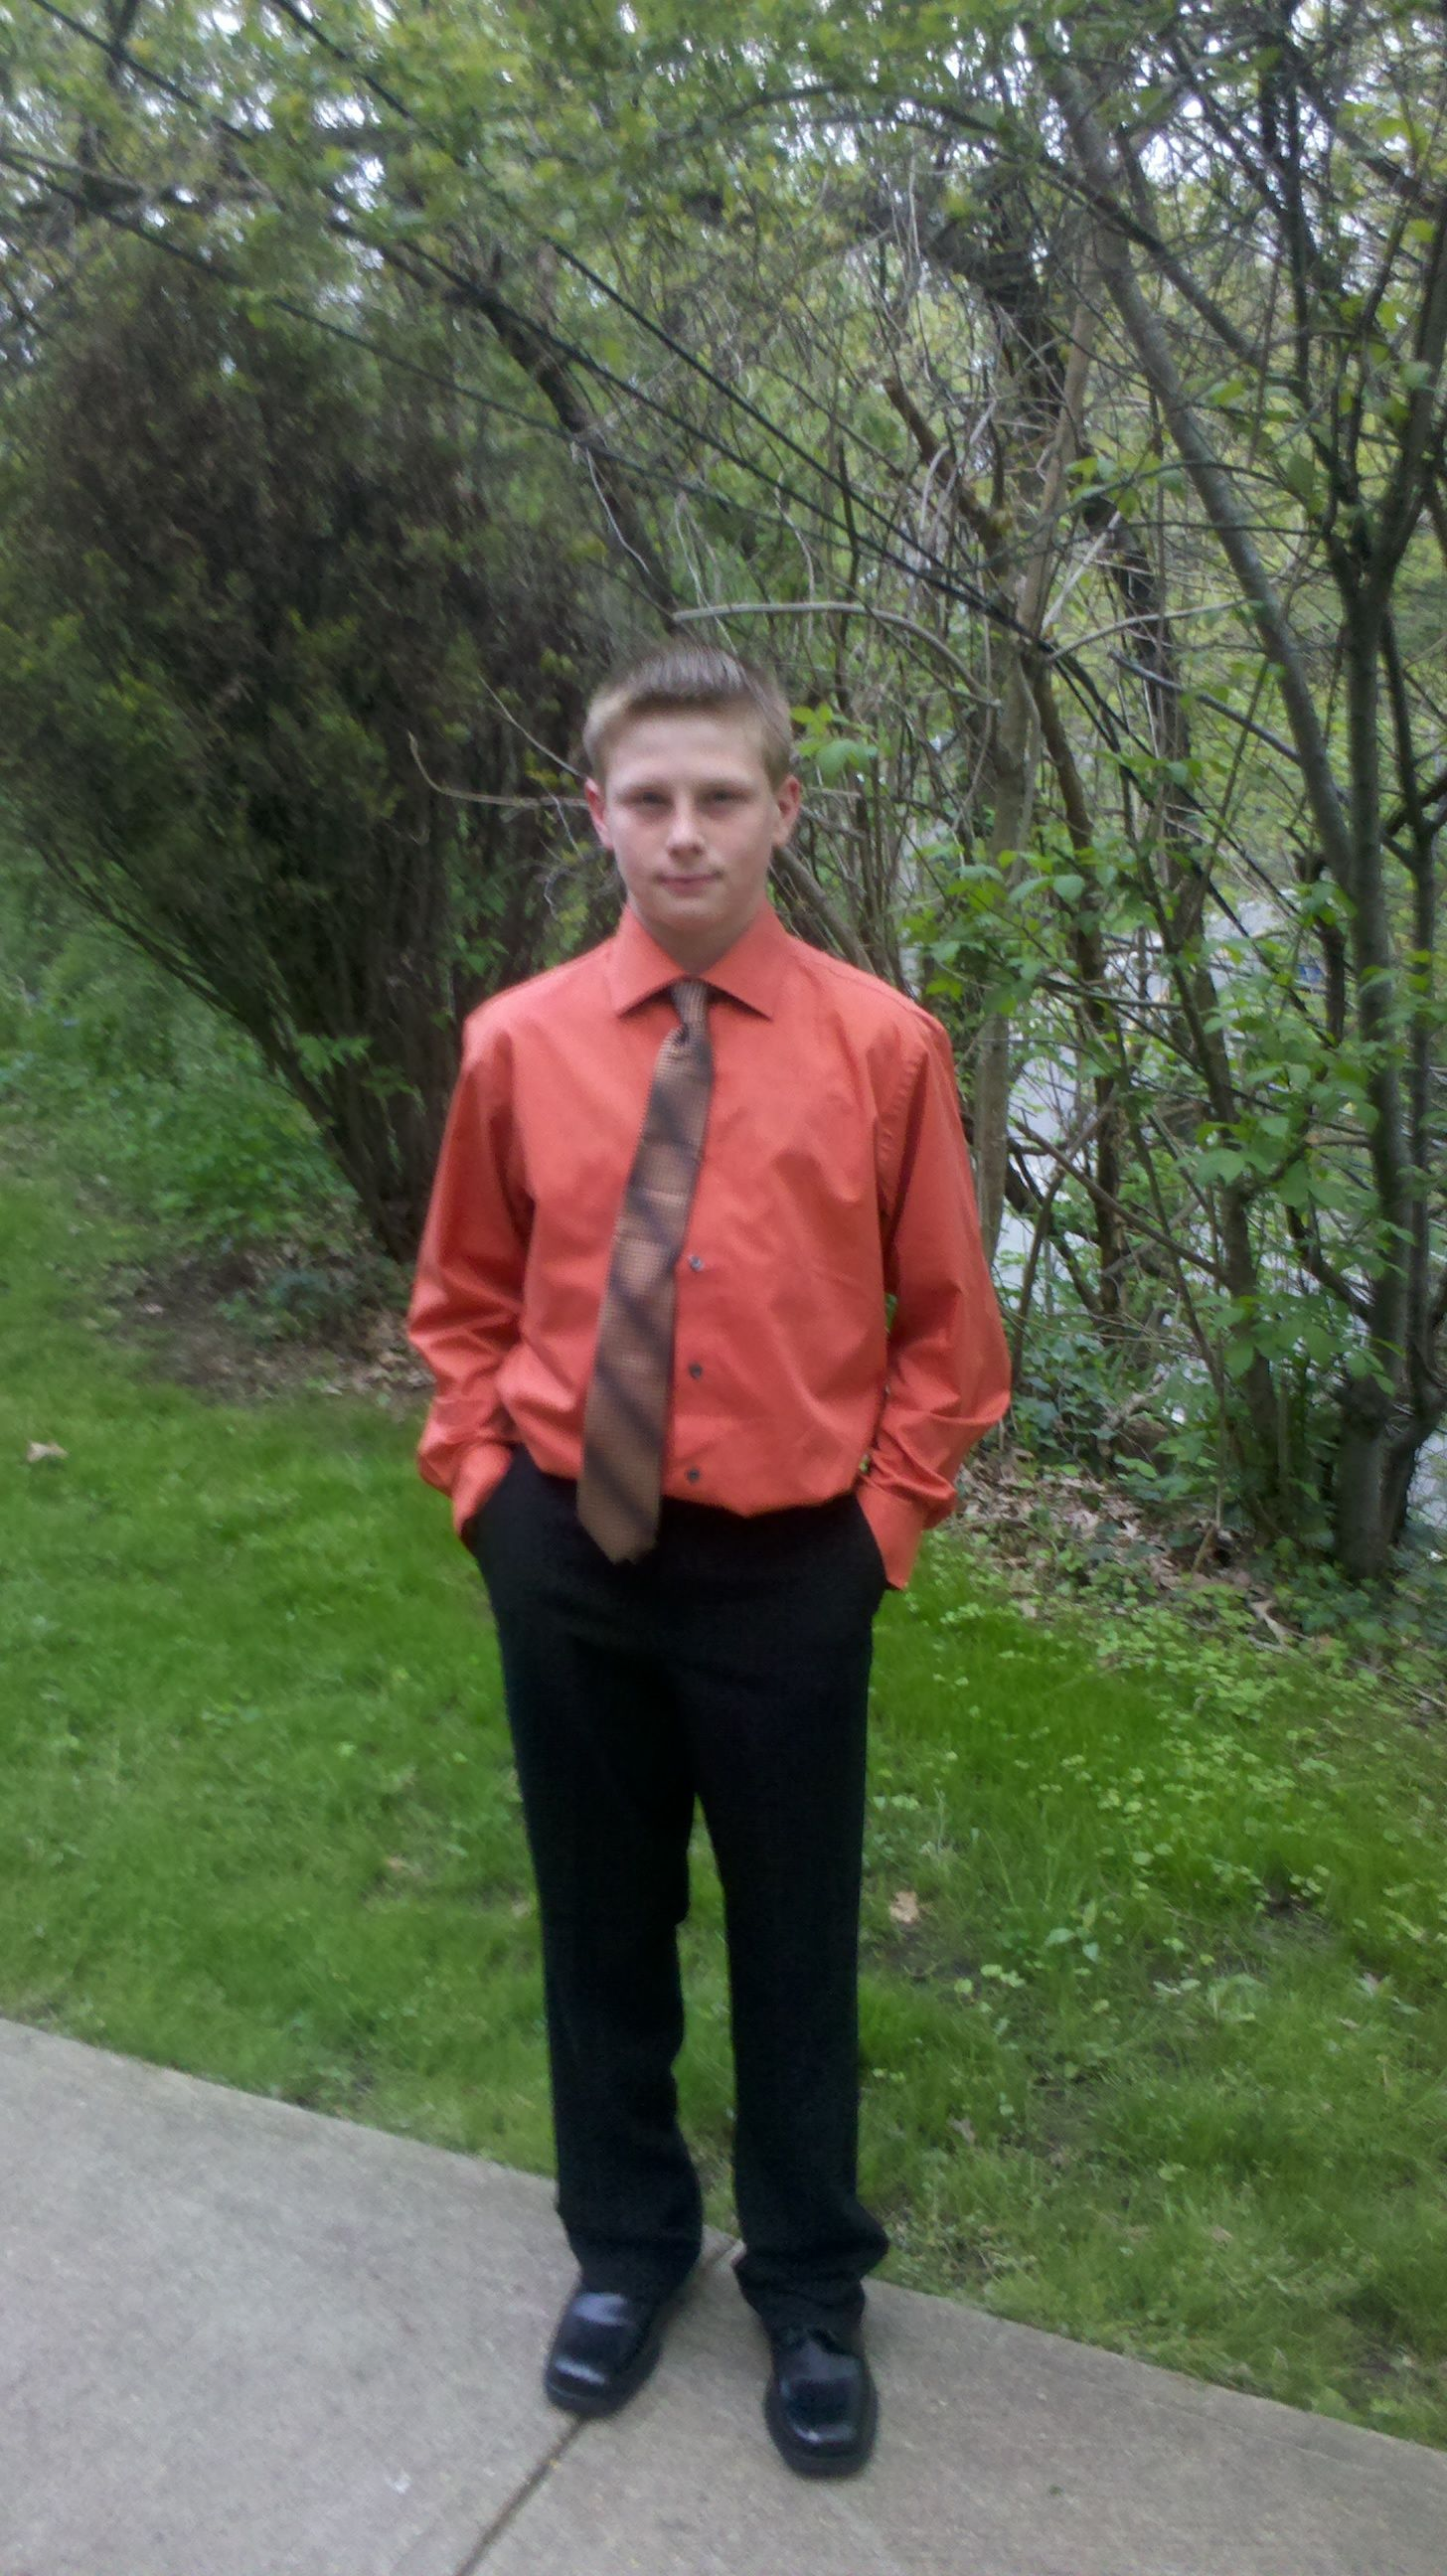 MY baby going to the semi sophomore year.